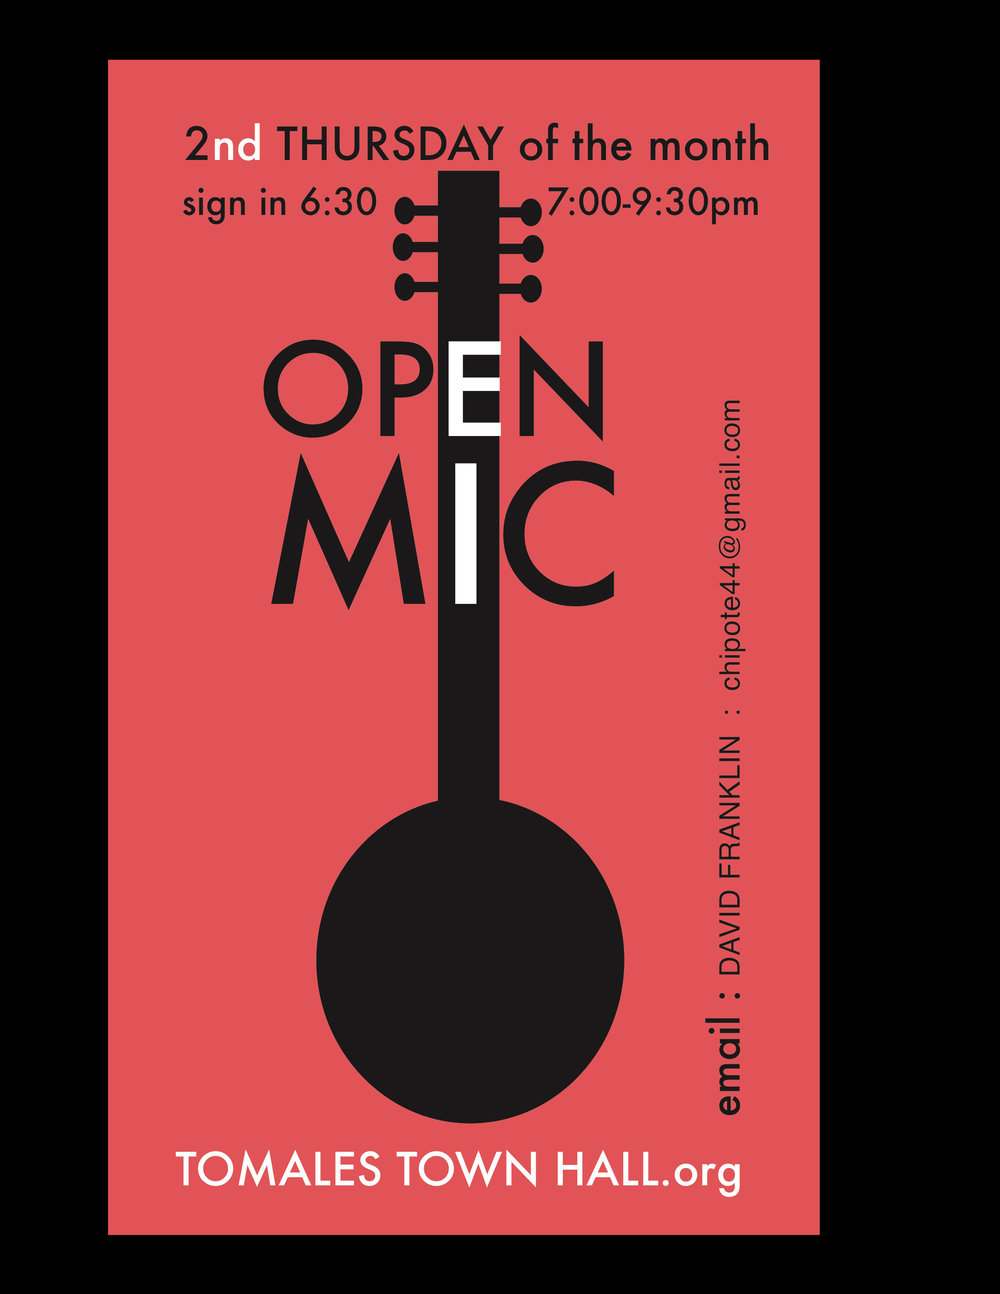 openmic-2nd-thu-web.jpg